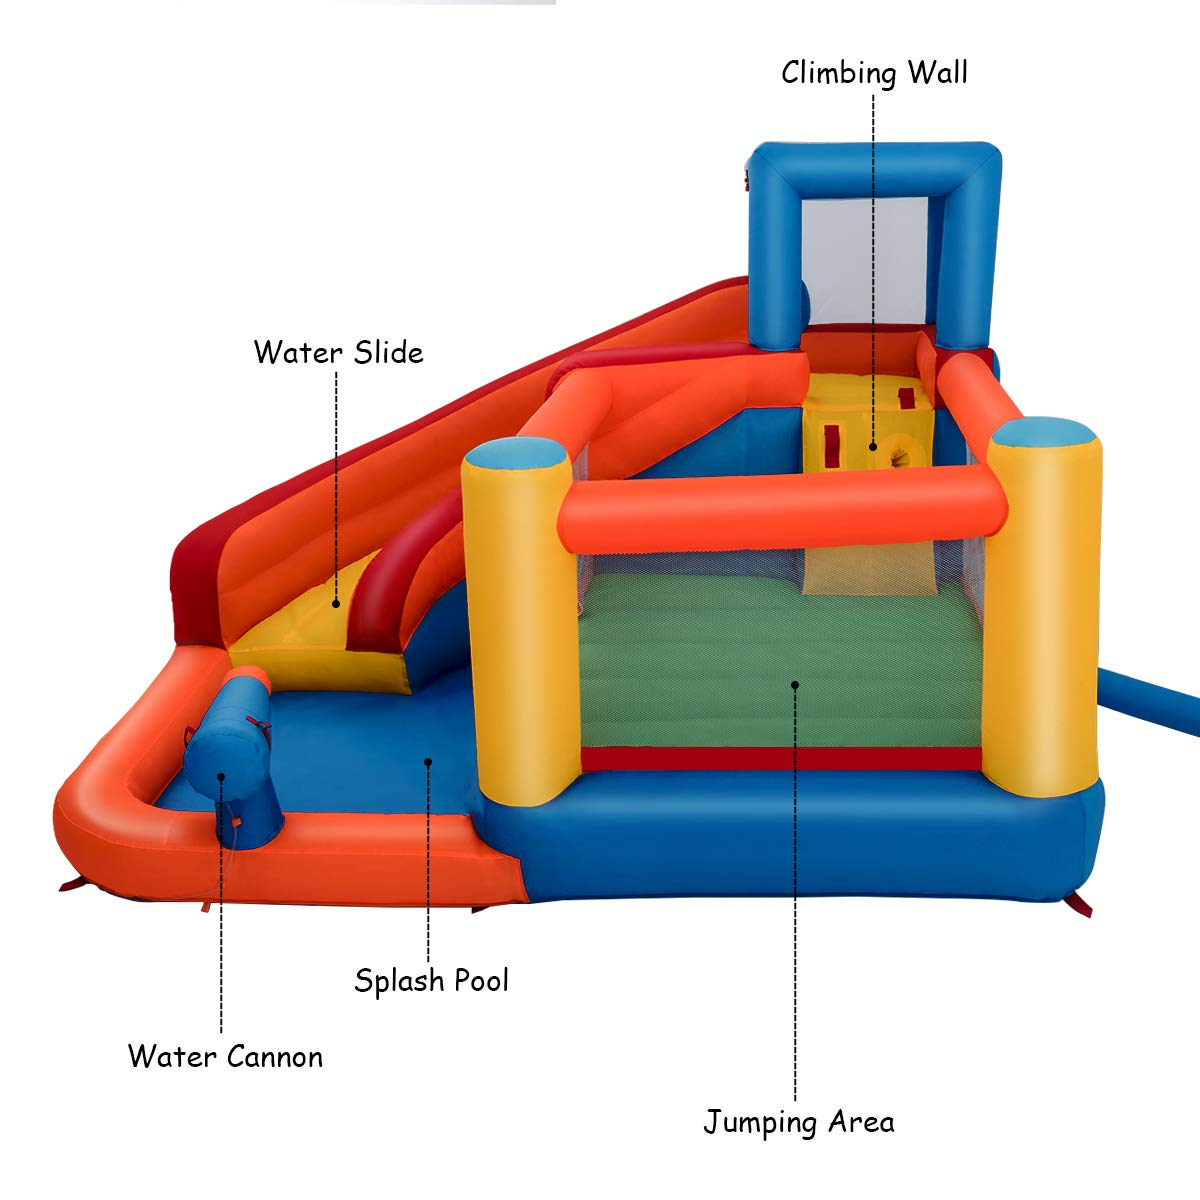 Costzon Inflatable Bounce House, 5-in-1 Water Slide w/ Climbing Wall, Jumping Area, Splash Pool, Water Cannon, Including Oxford Carry Bag, Repairing Kit, Stakes, Hose, Without Blower by Costzon (Image #2)